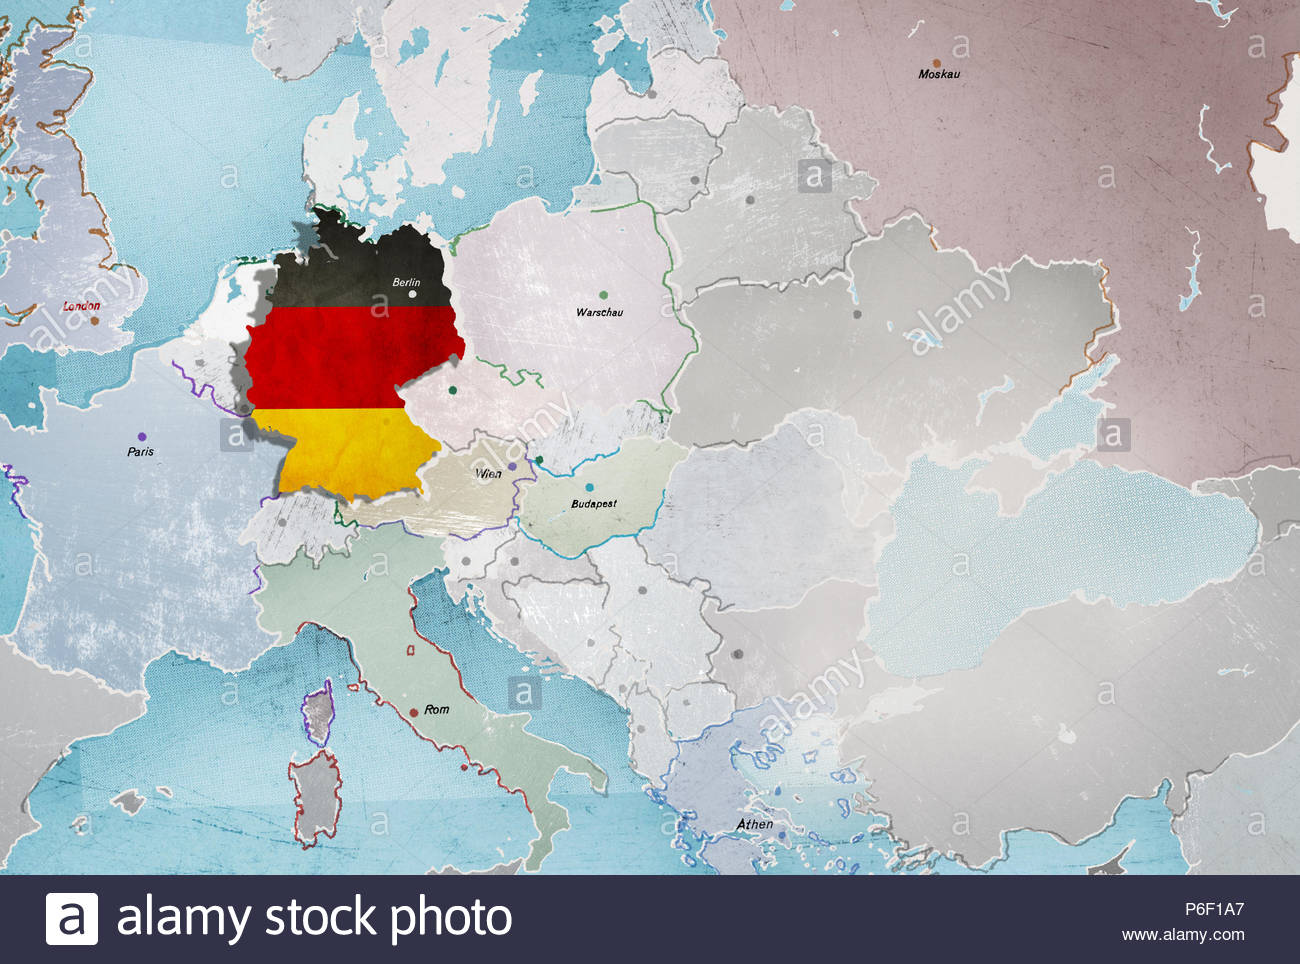 Series Map Europe Middle East Stock Photo 210542703 Alamy